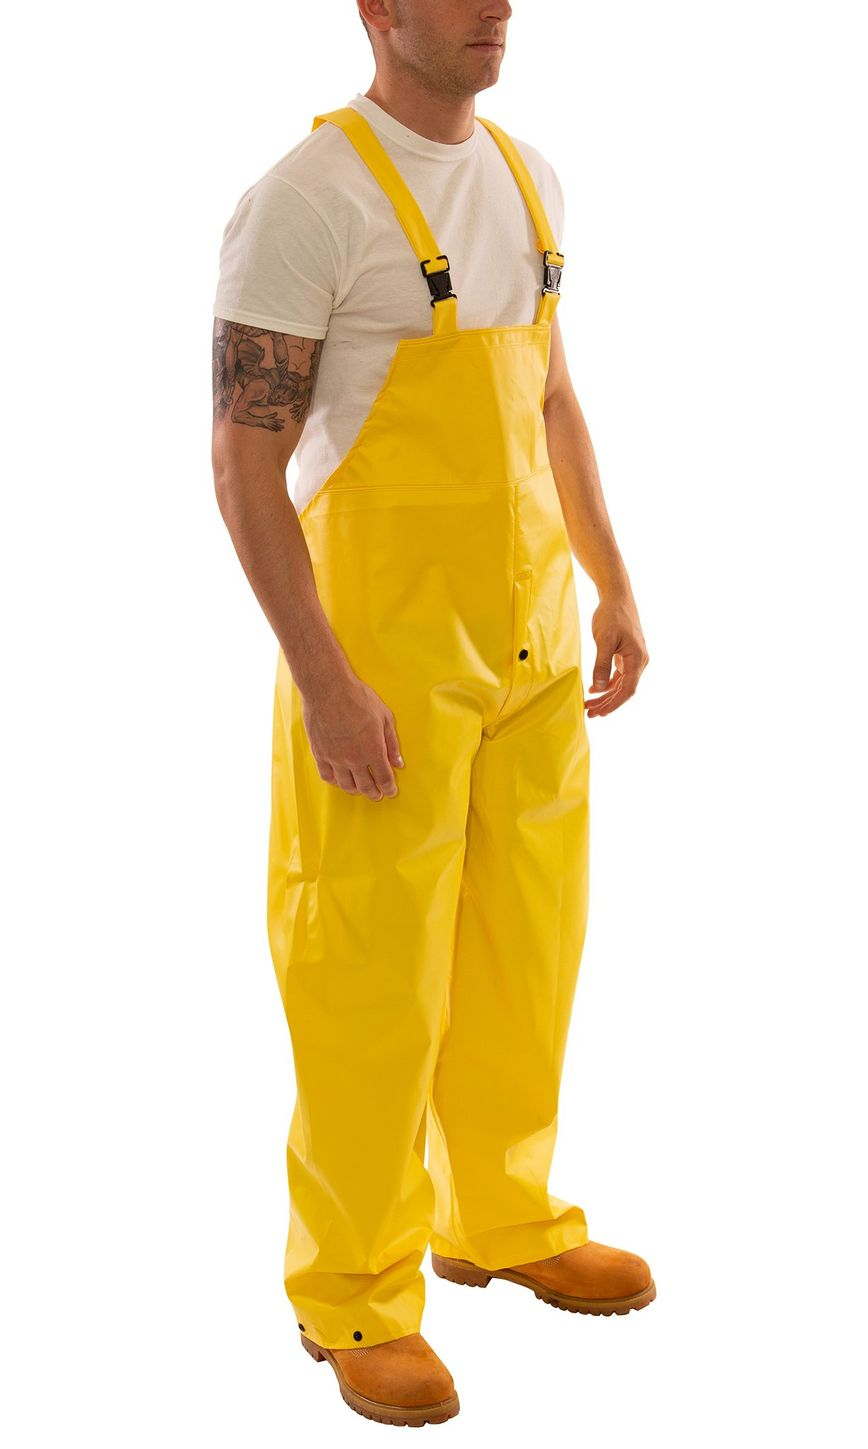 Tingley O56107 DuraScrim™ Fire Resistant Overalls - PVC Coated, Chemical Resistant, with Snap Fly Front Side